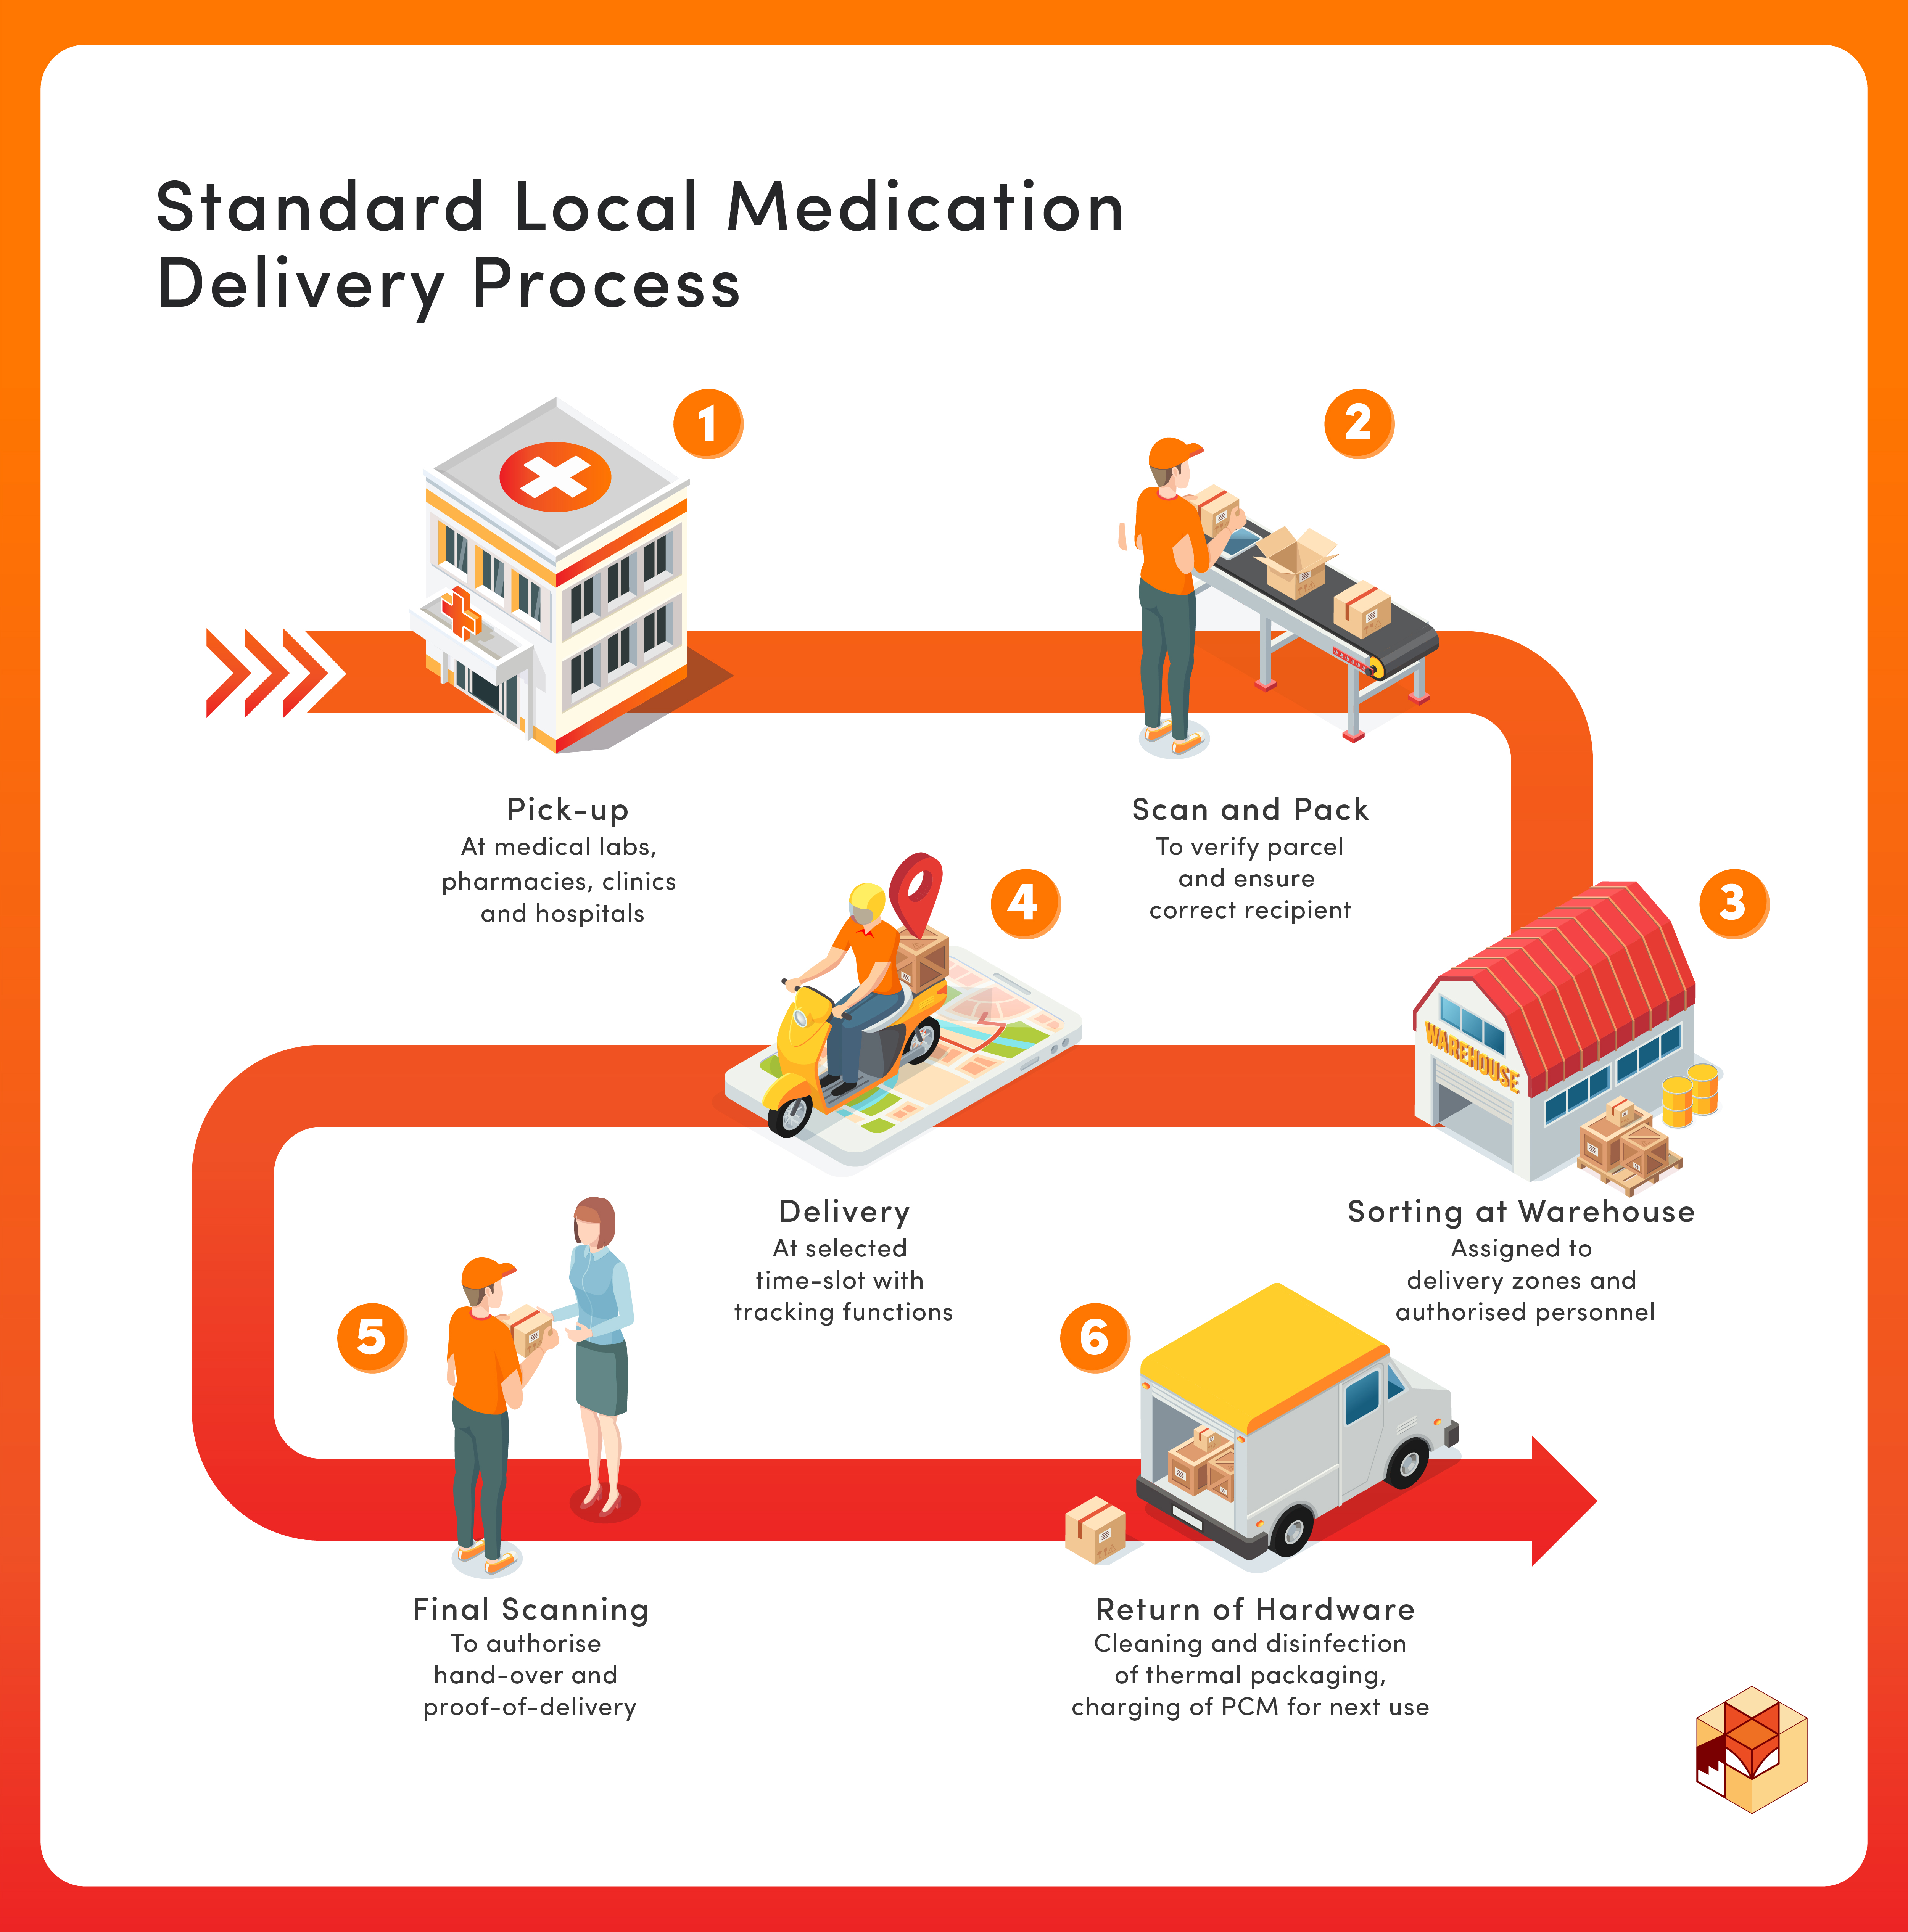 Standard Local Medication Delivery Process